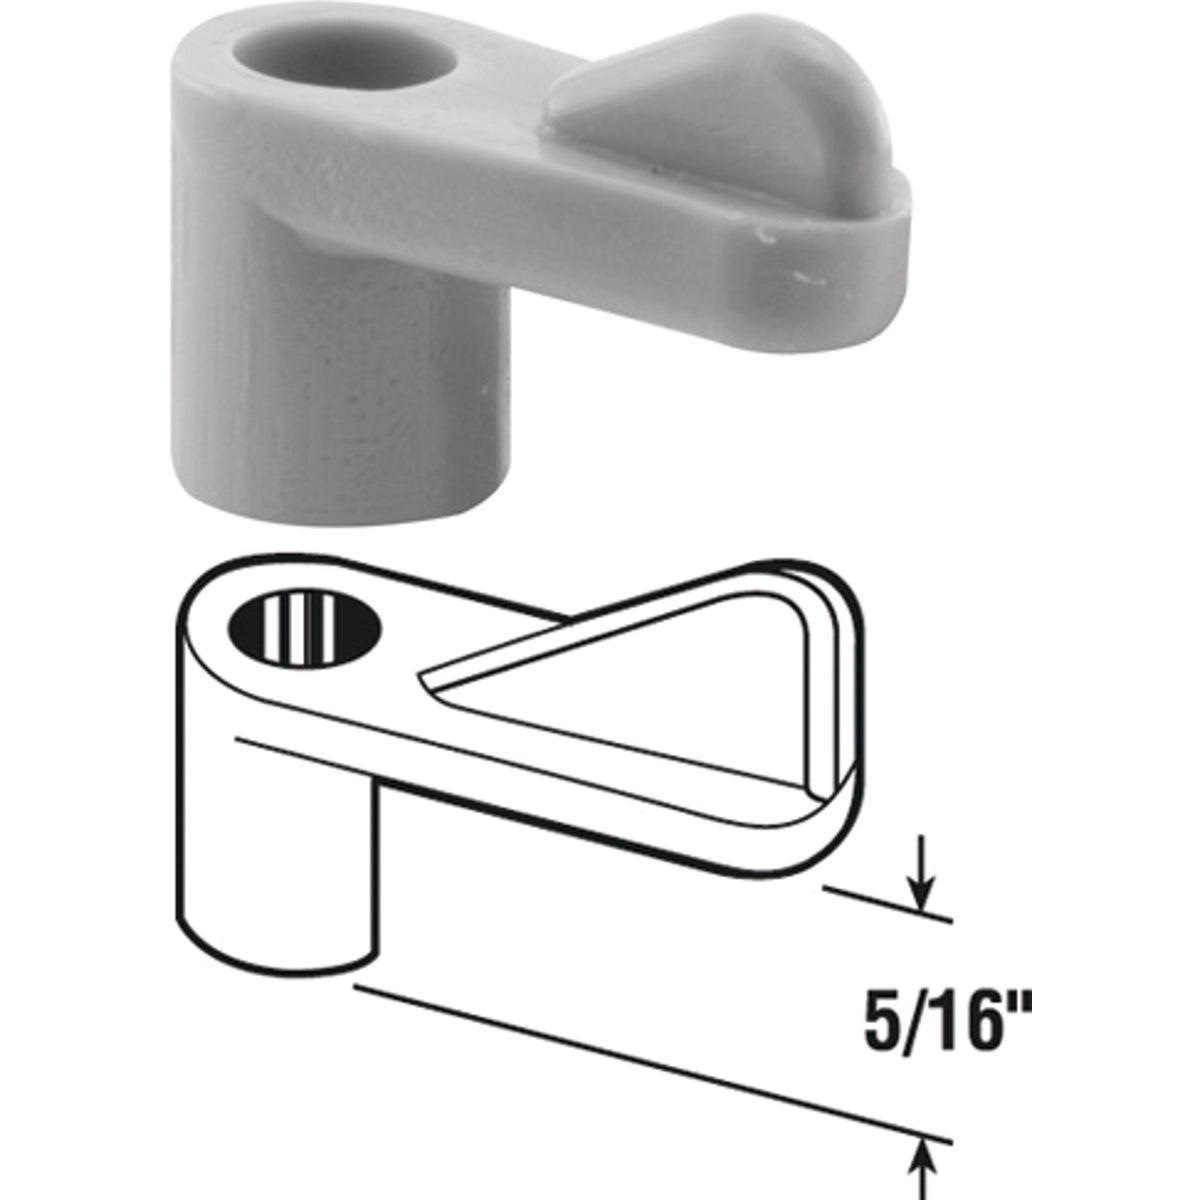 "5/16"" PLASTC SCREEN CLIP - 182932-5 by Prime Line Products"